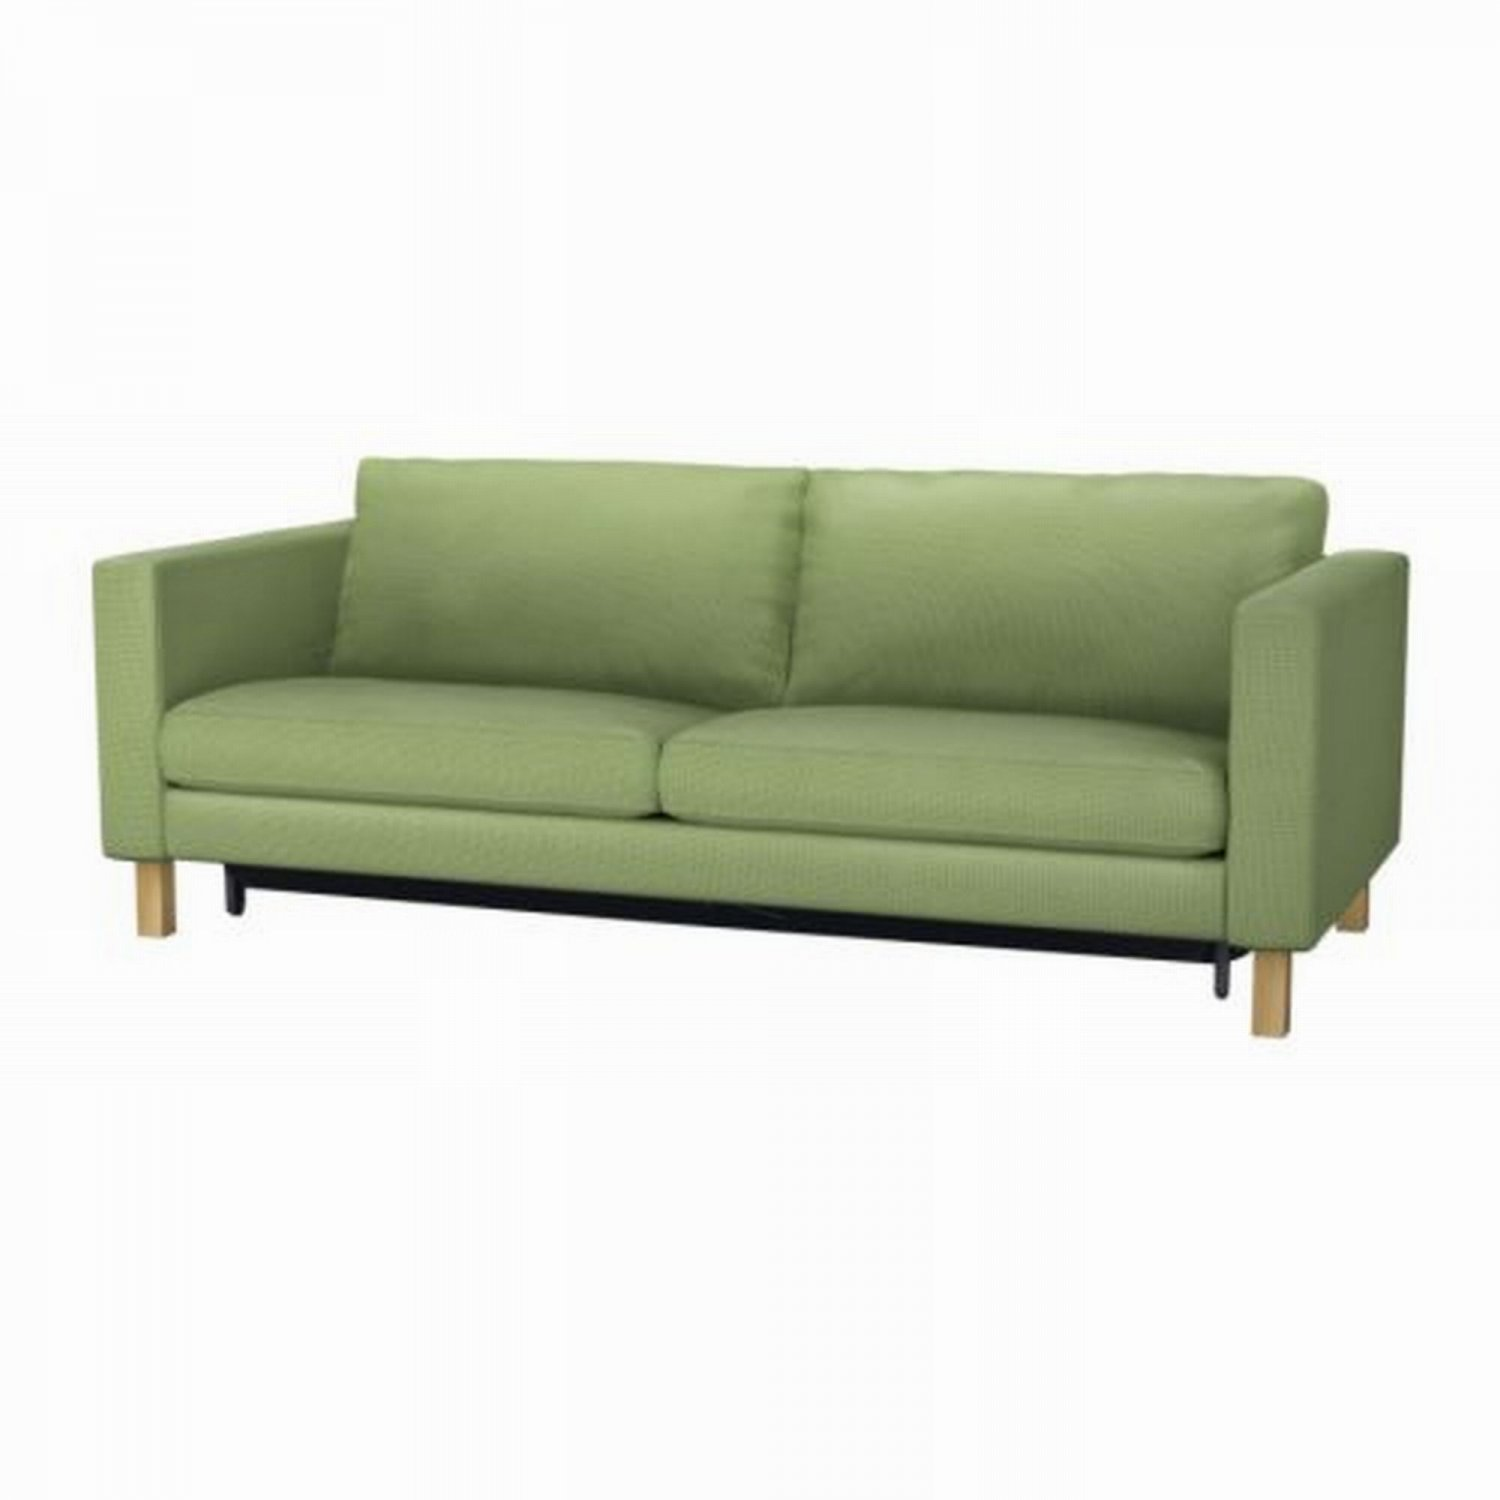 Ikea 80 Sofa Ikea Karlstad Sofa Bed Sofabed Slipcover Cover Korndal Green